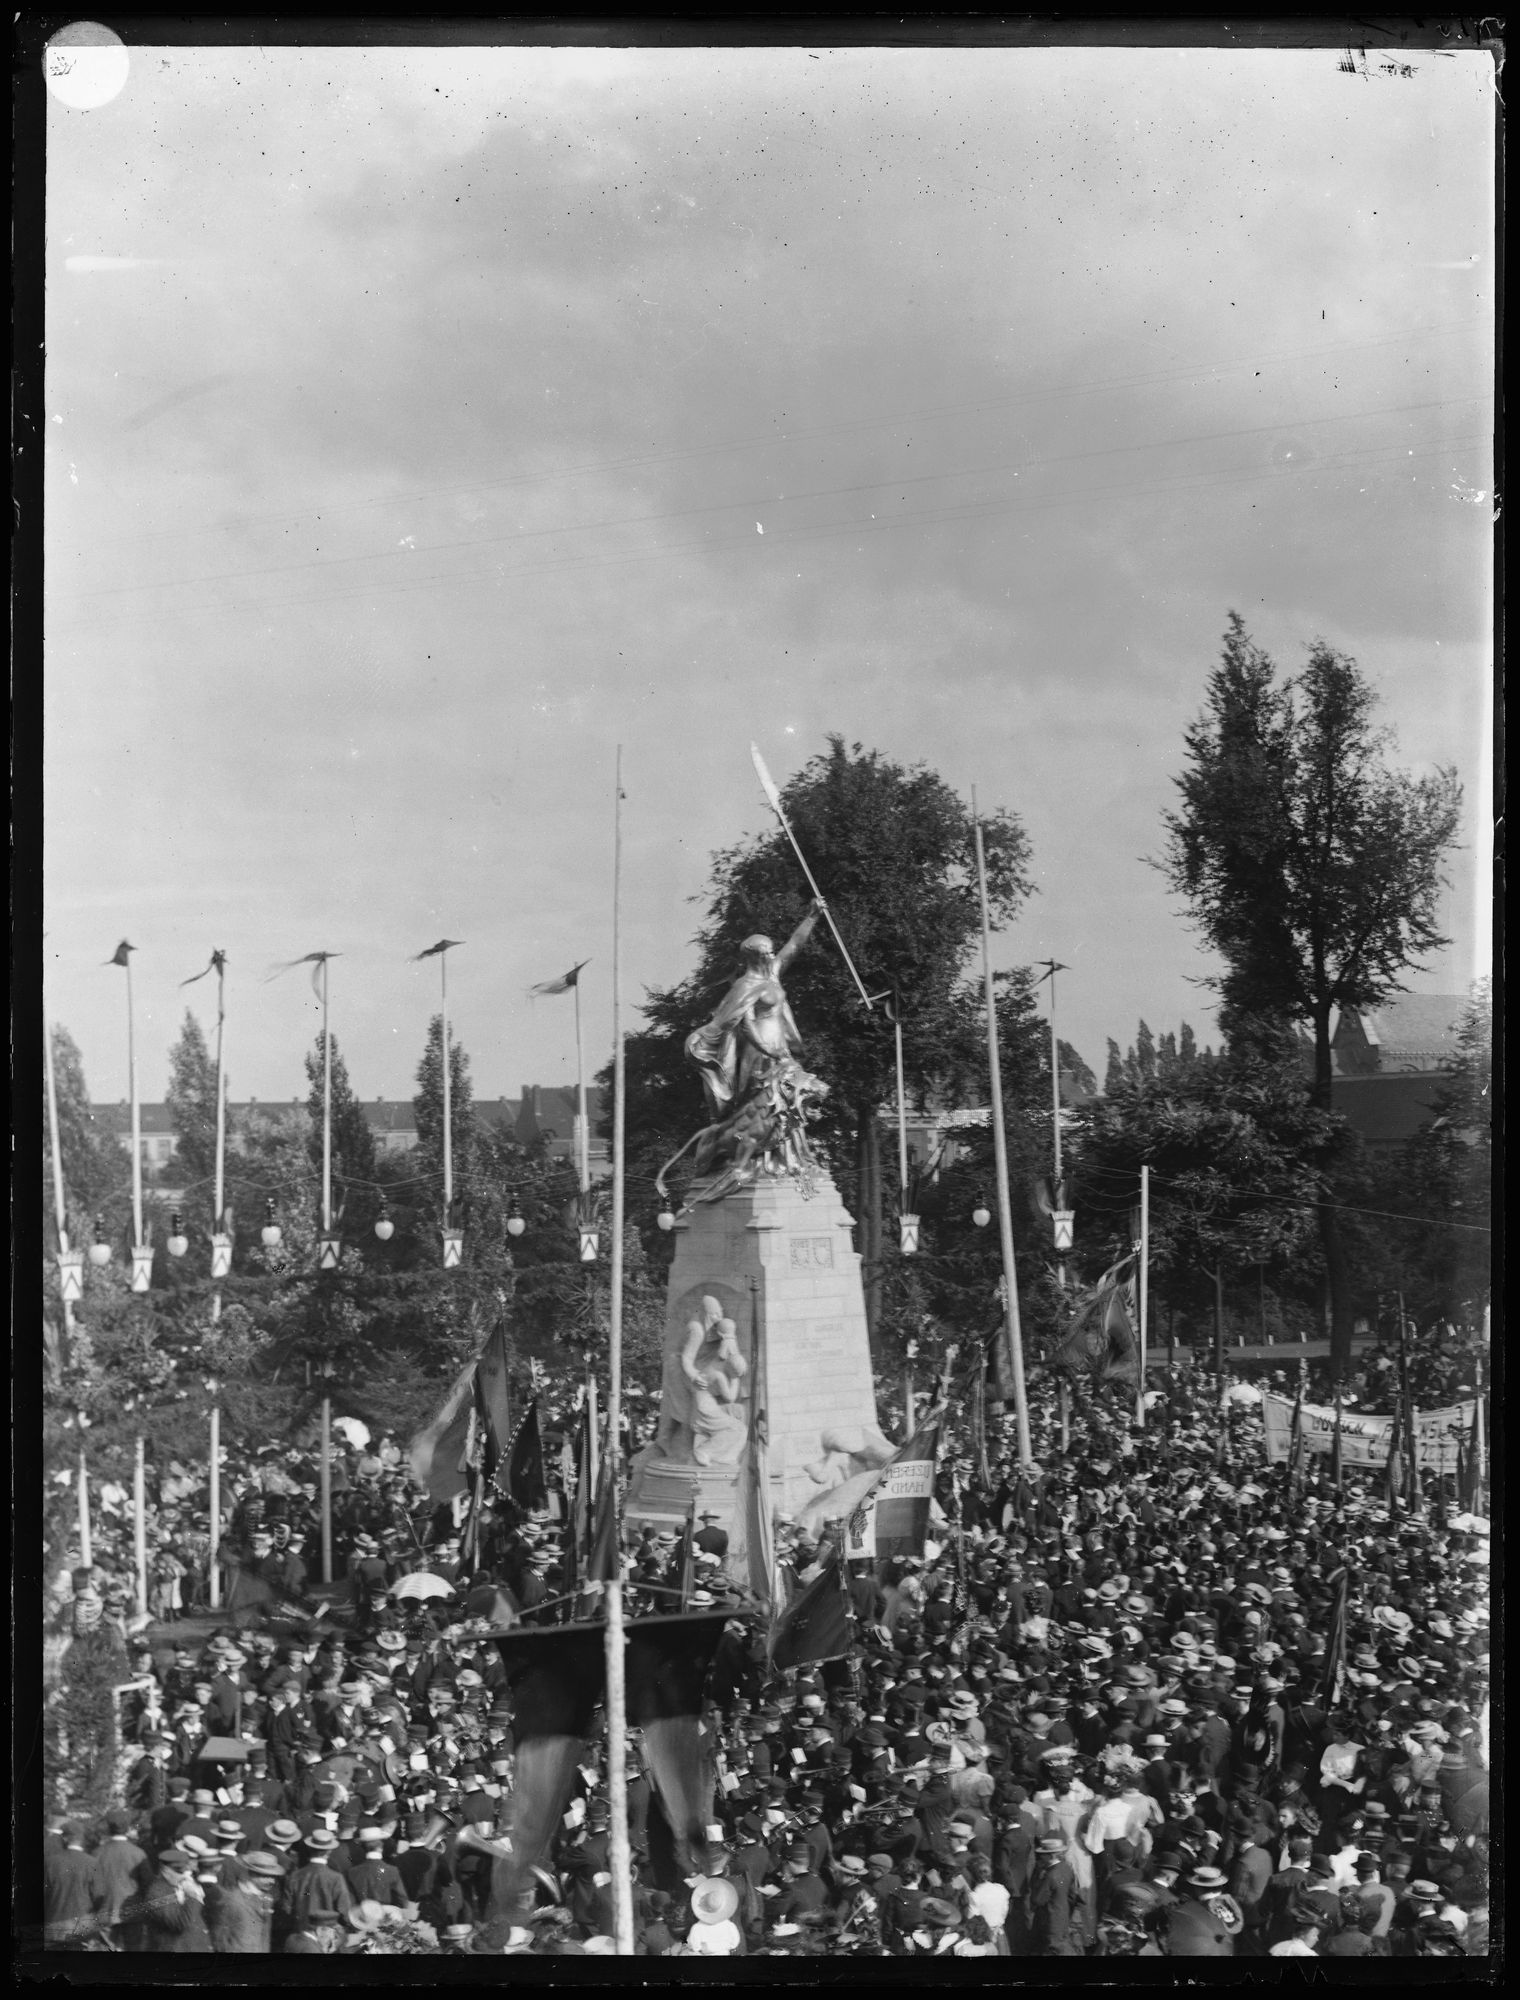 Inhuldiging Groeningemonument in 1906